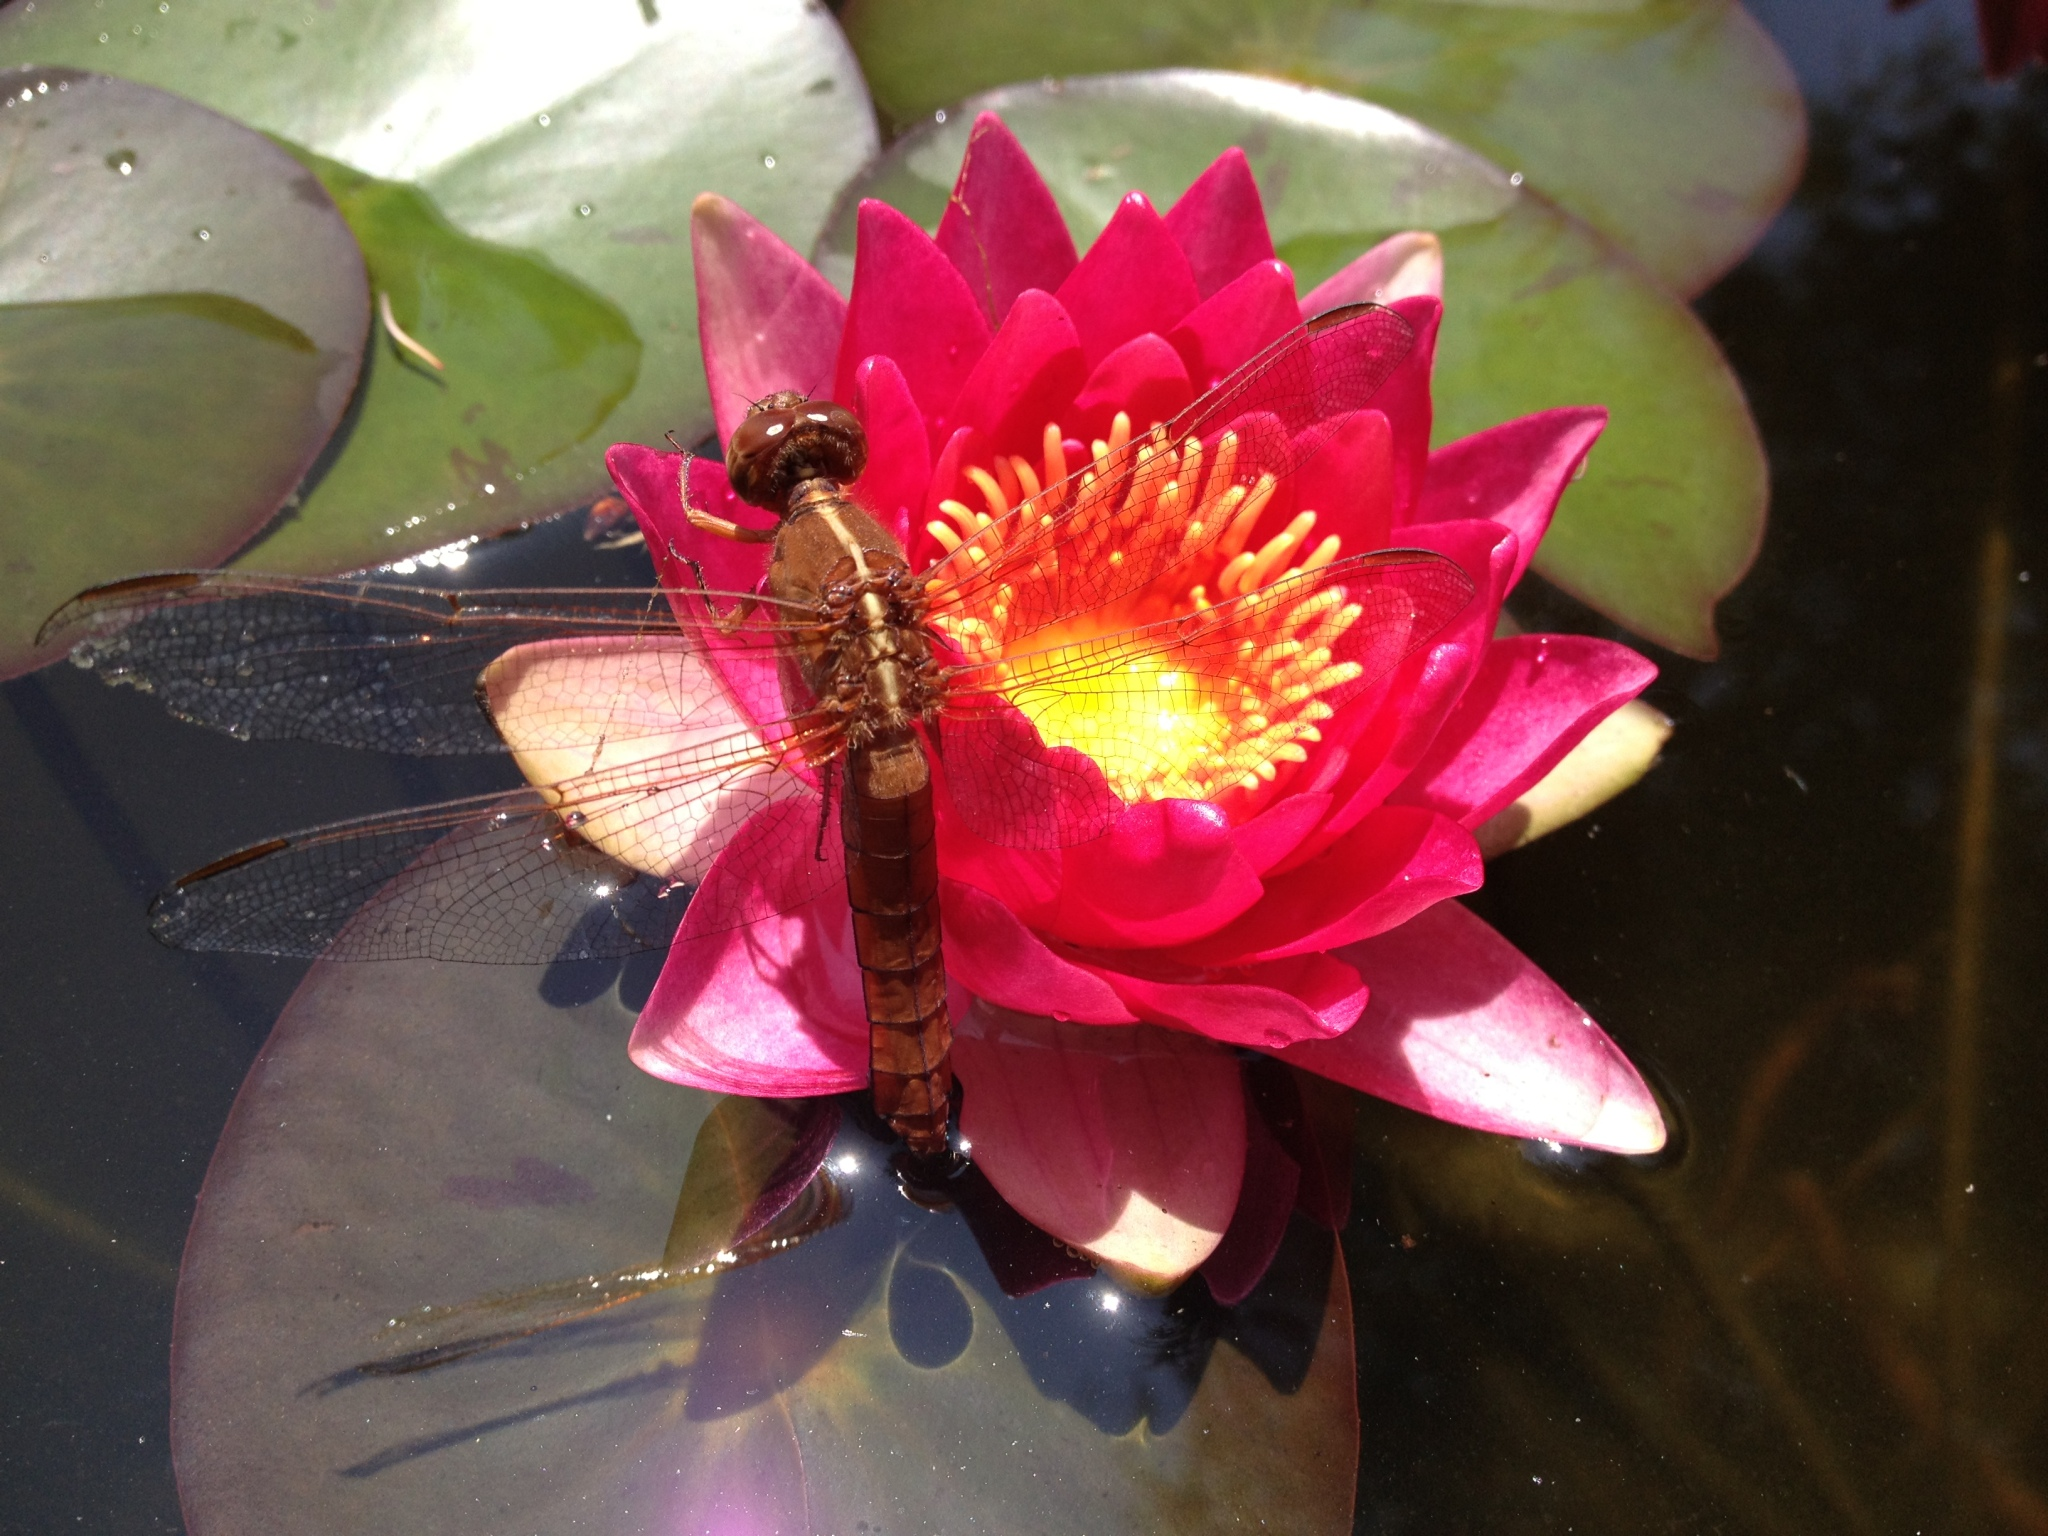 A Dragonfly resting on a Sultan Water Lily